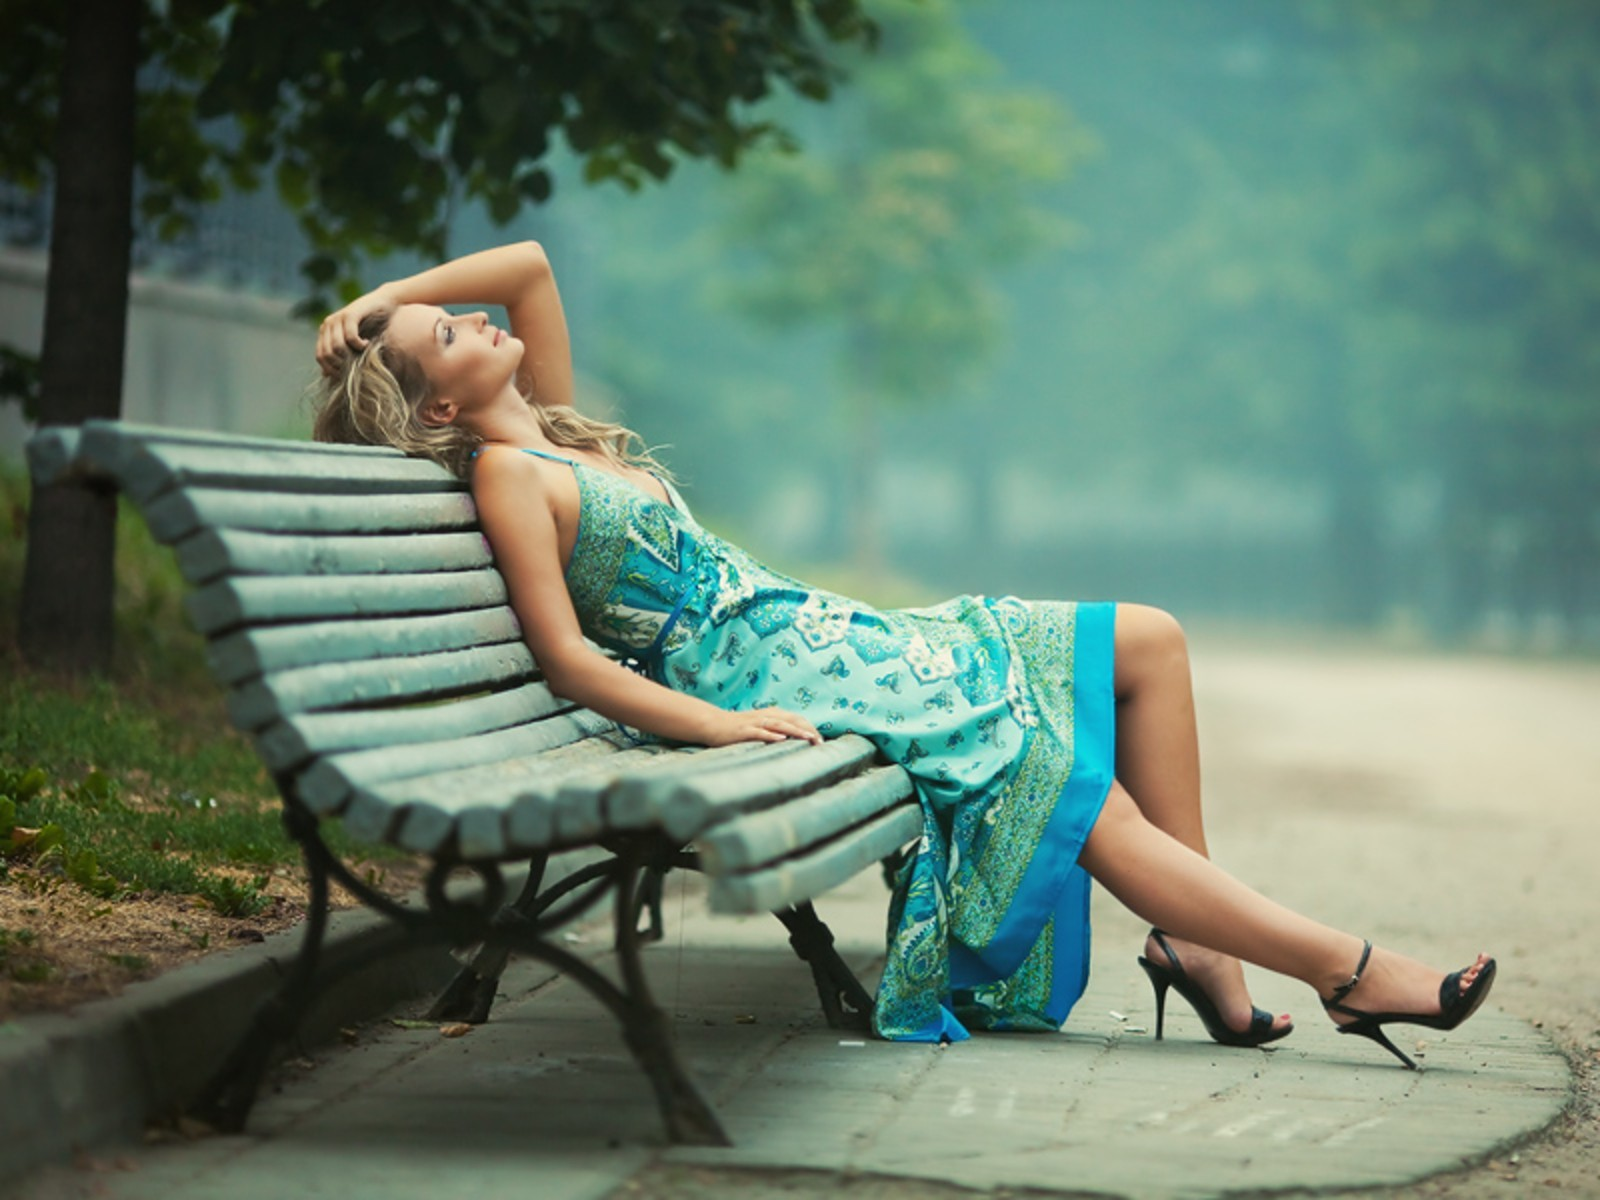 blondes woman thinking bench HD Wallpaper